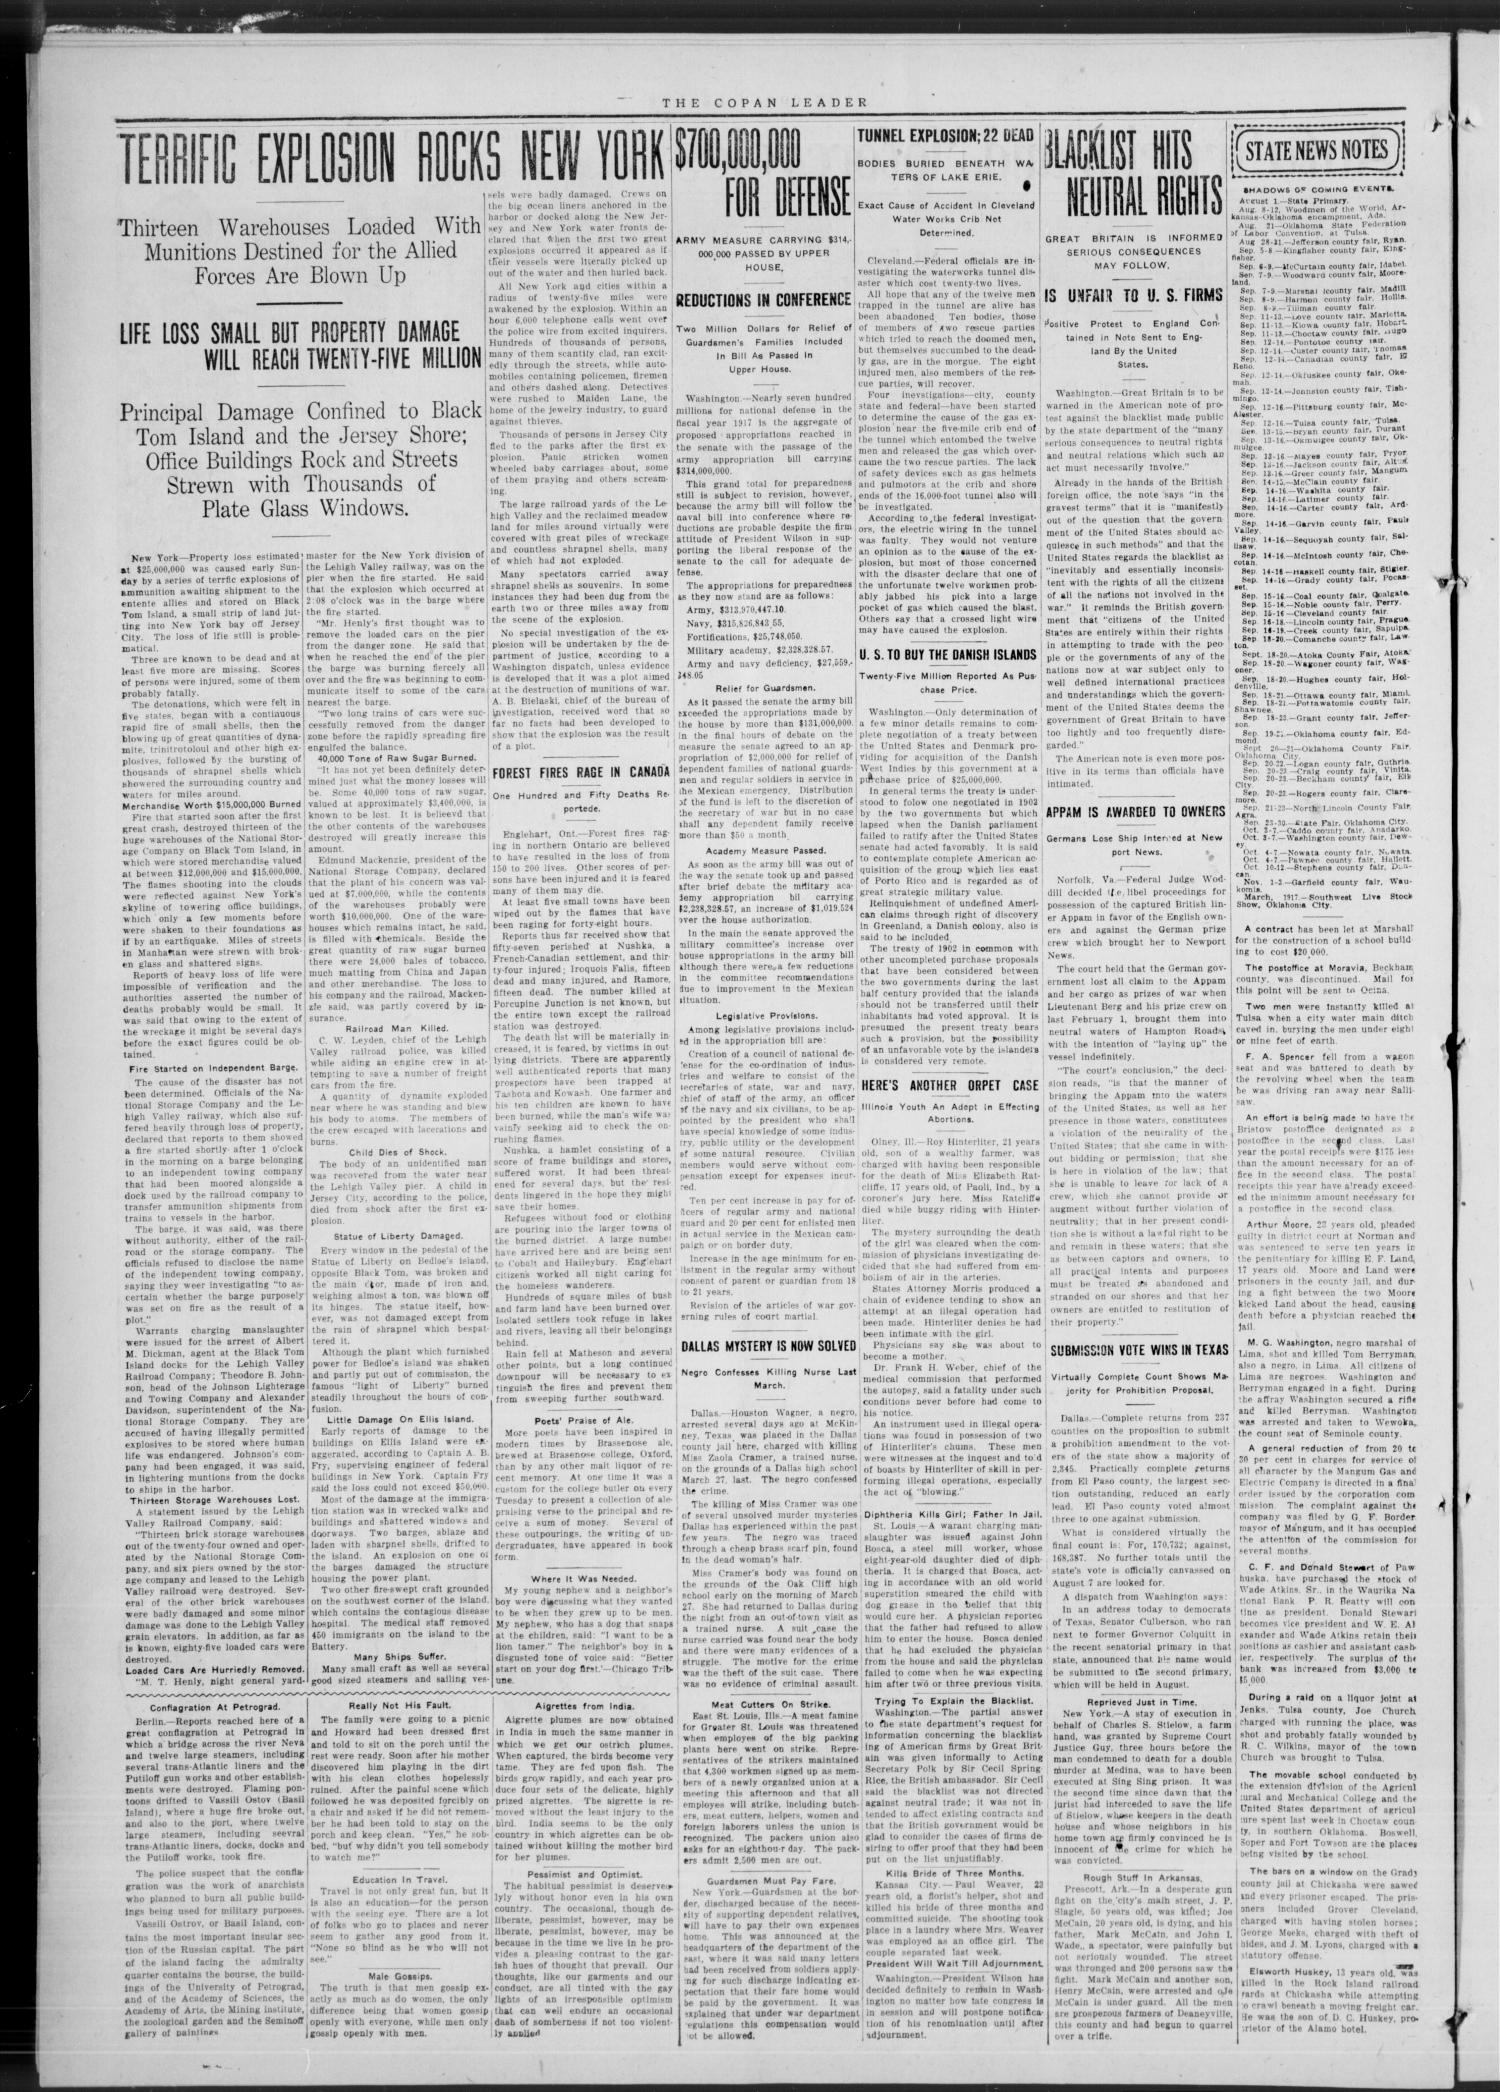 The Copan Leader. (Copan, Okla.), Vol. 1, No. 28, Ed. 1 Friday, August 4, 1916                                                                                                      [Sequence #]: 4 of 8